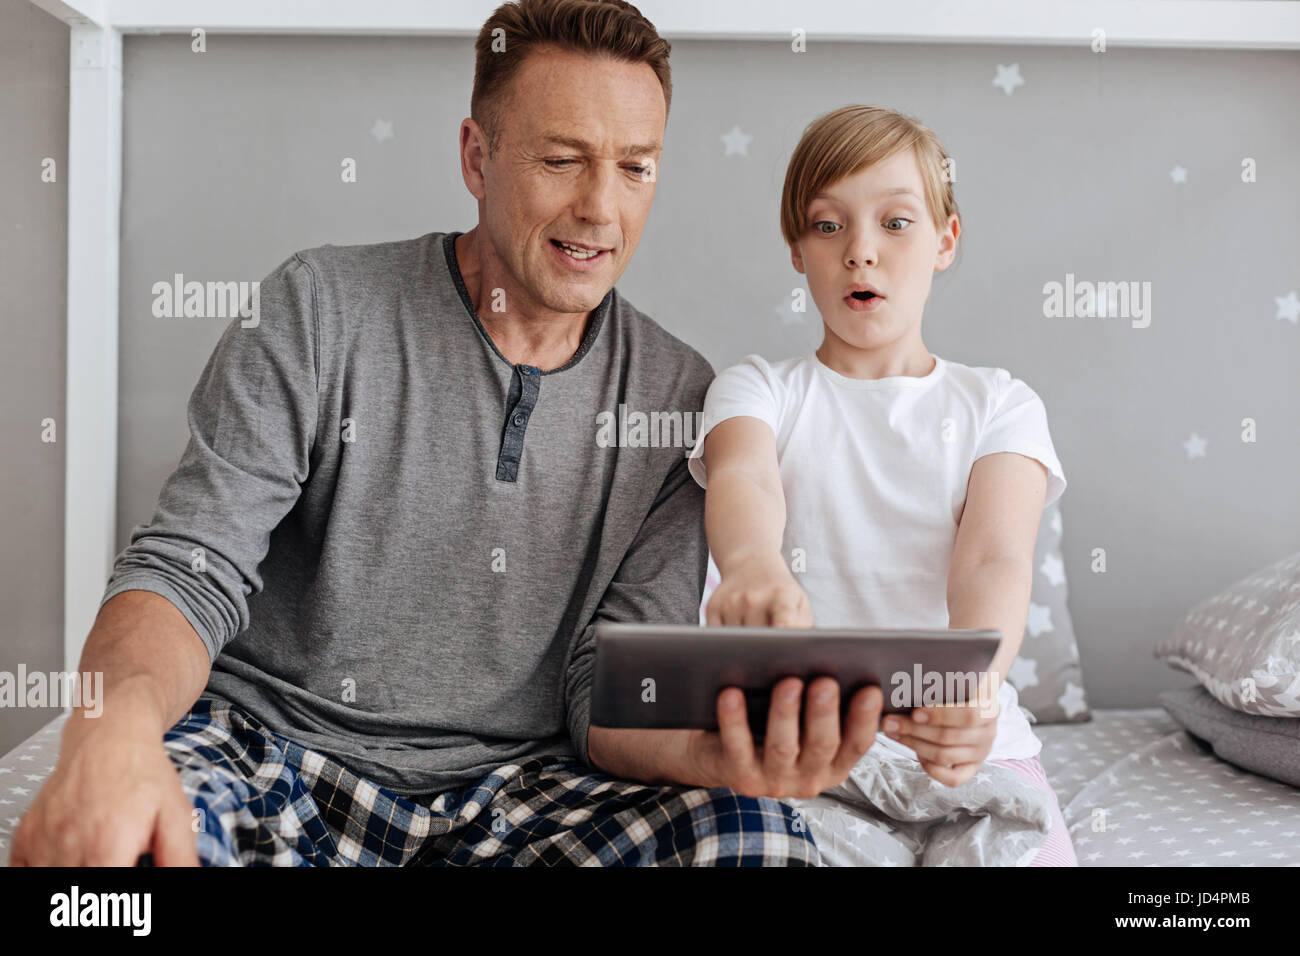 Bright passionate child pointing at the tablet - Stock Image